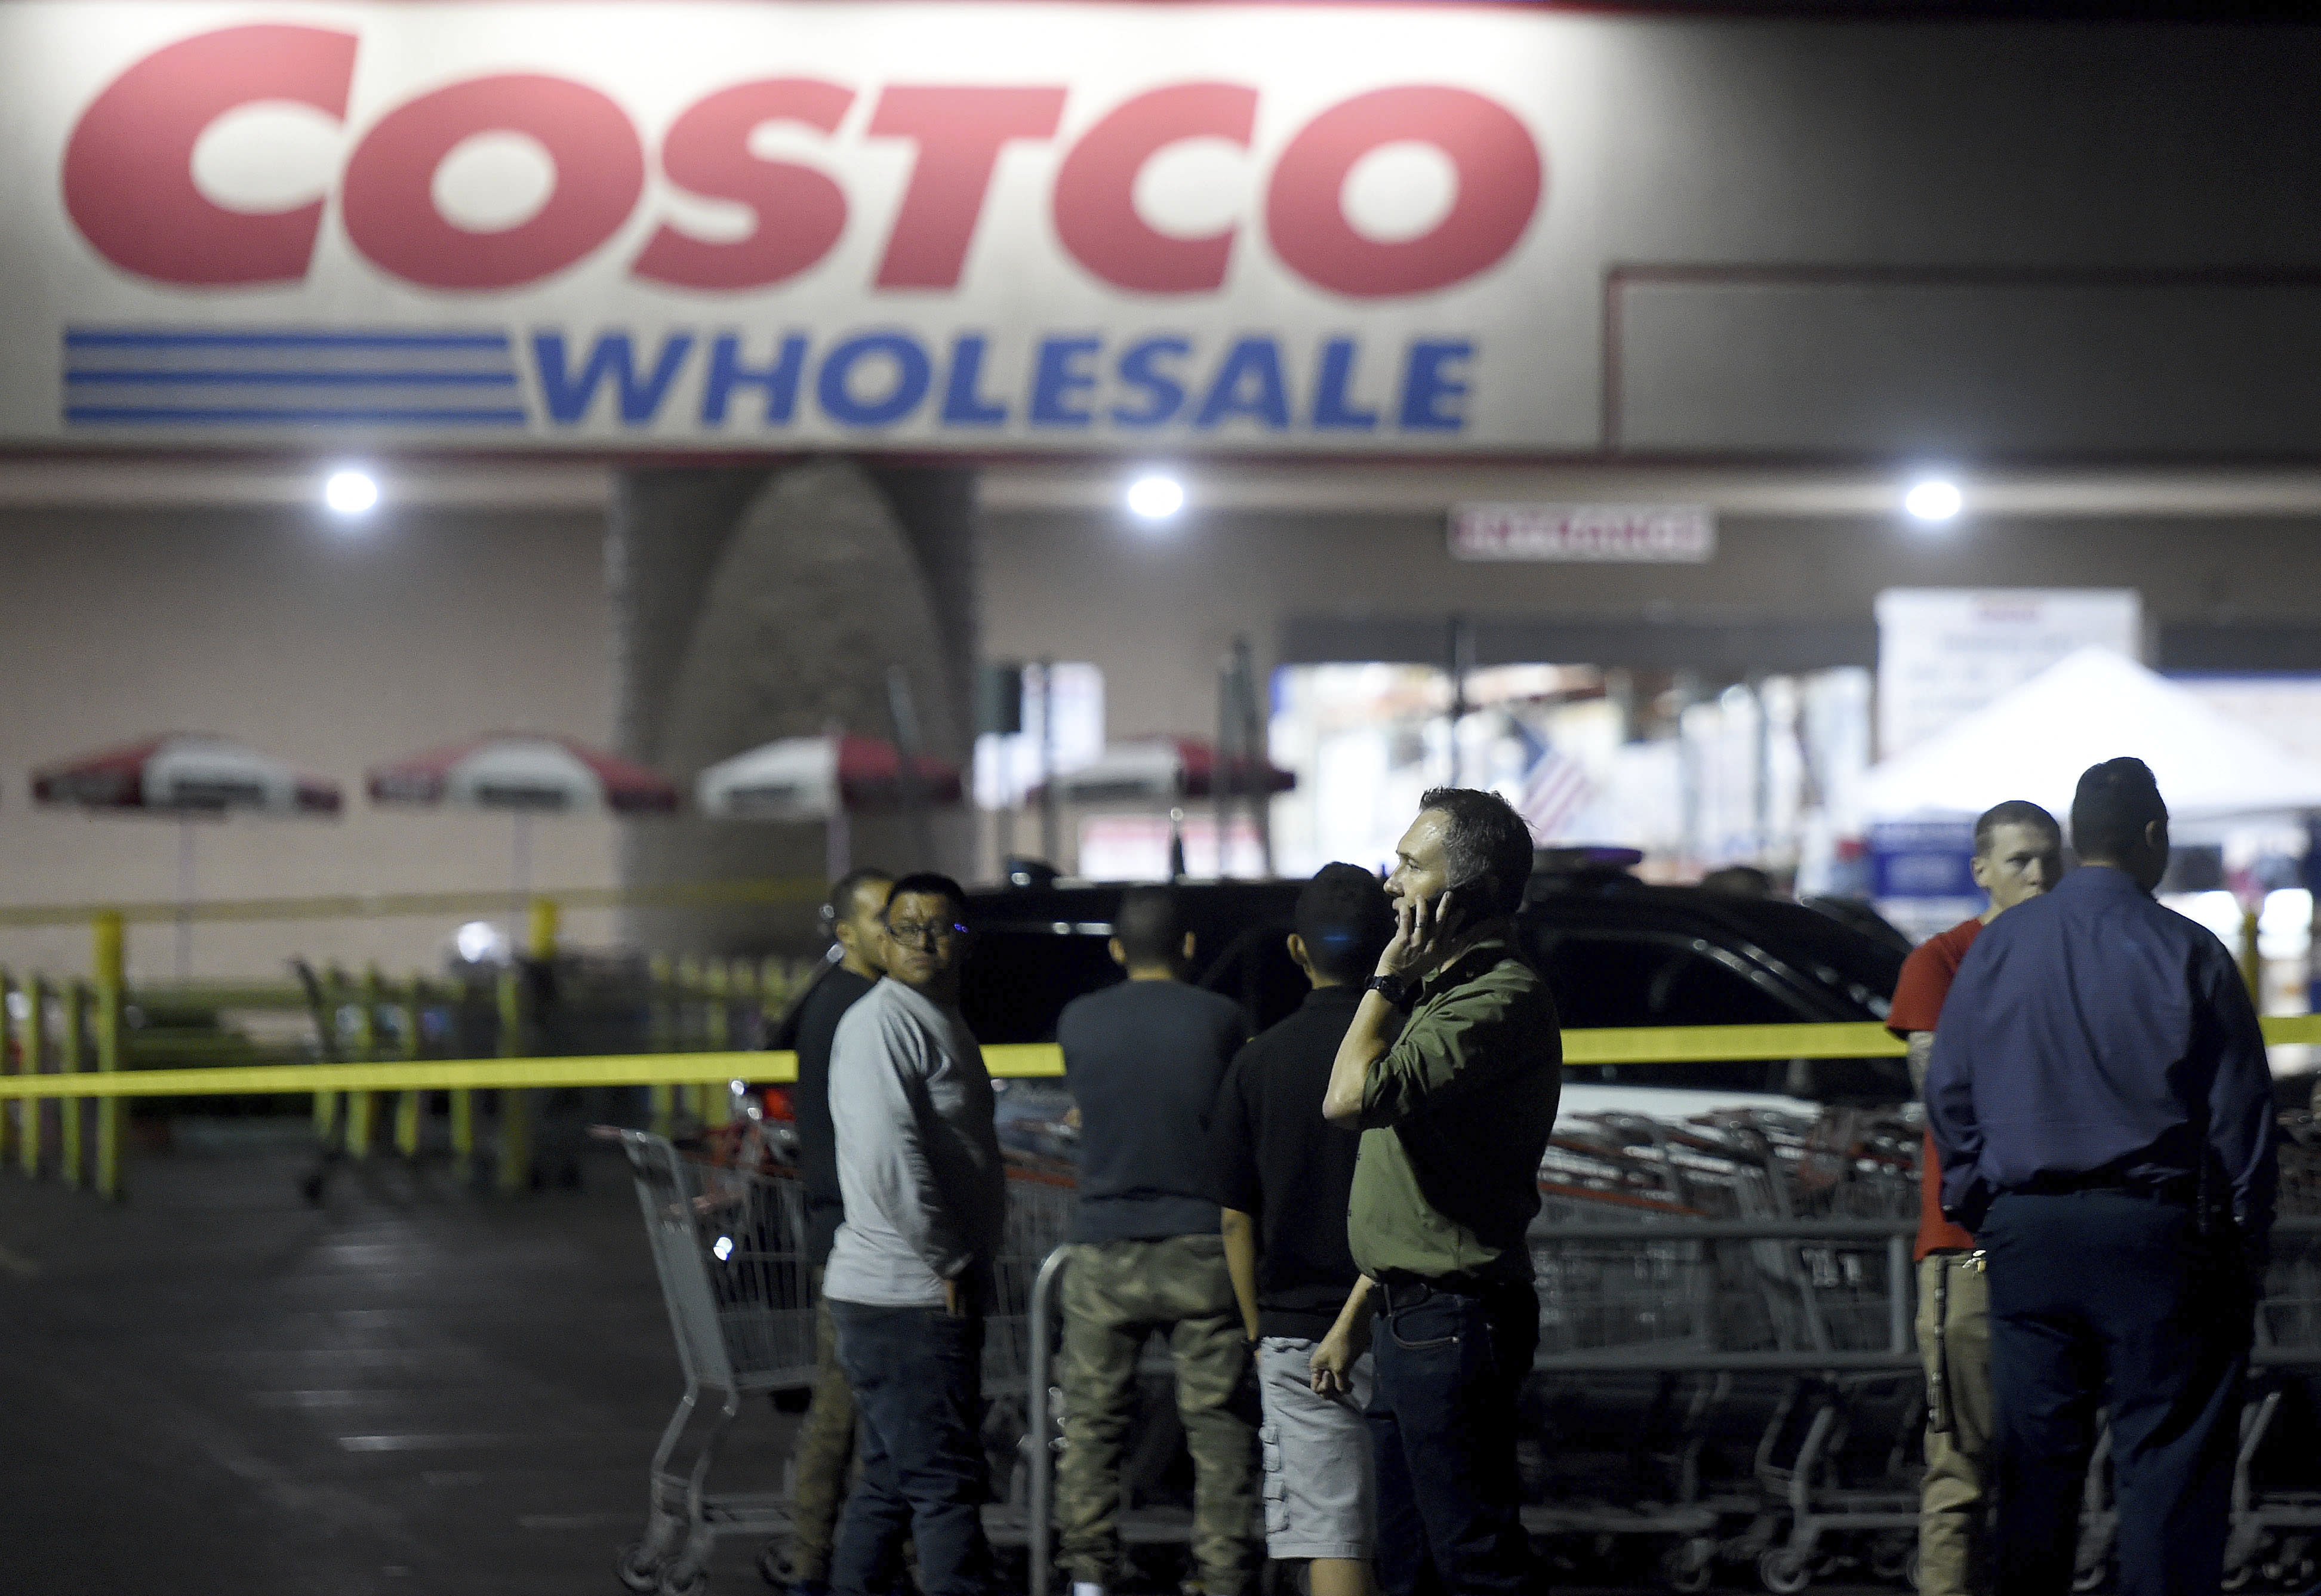 The Latest: Family: Costco shooting victim a 'gentle giant'